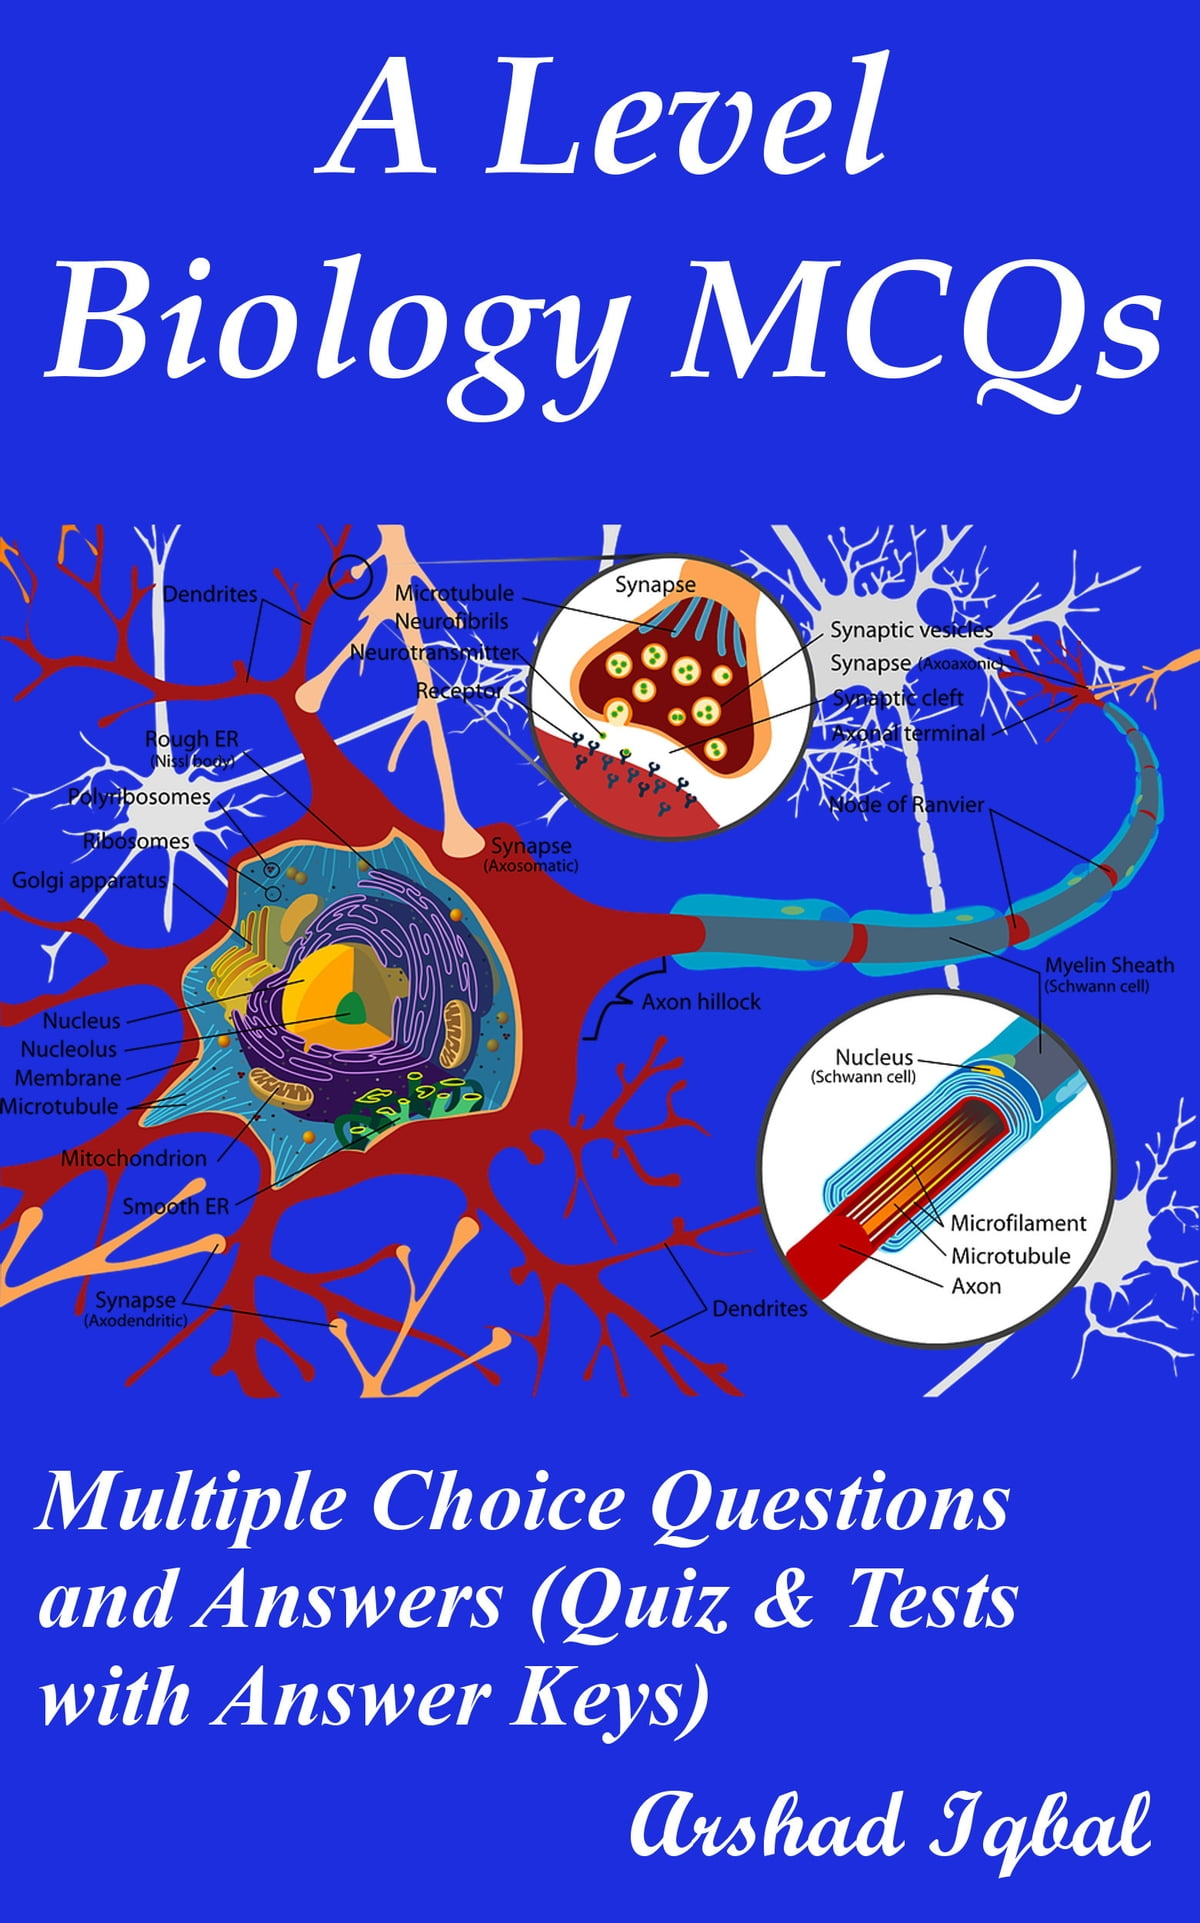 a level biology mcqs multiple choice questions and answers (quizElectric Circuit Design Mcqs #15